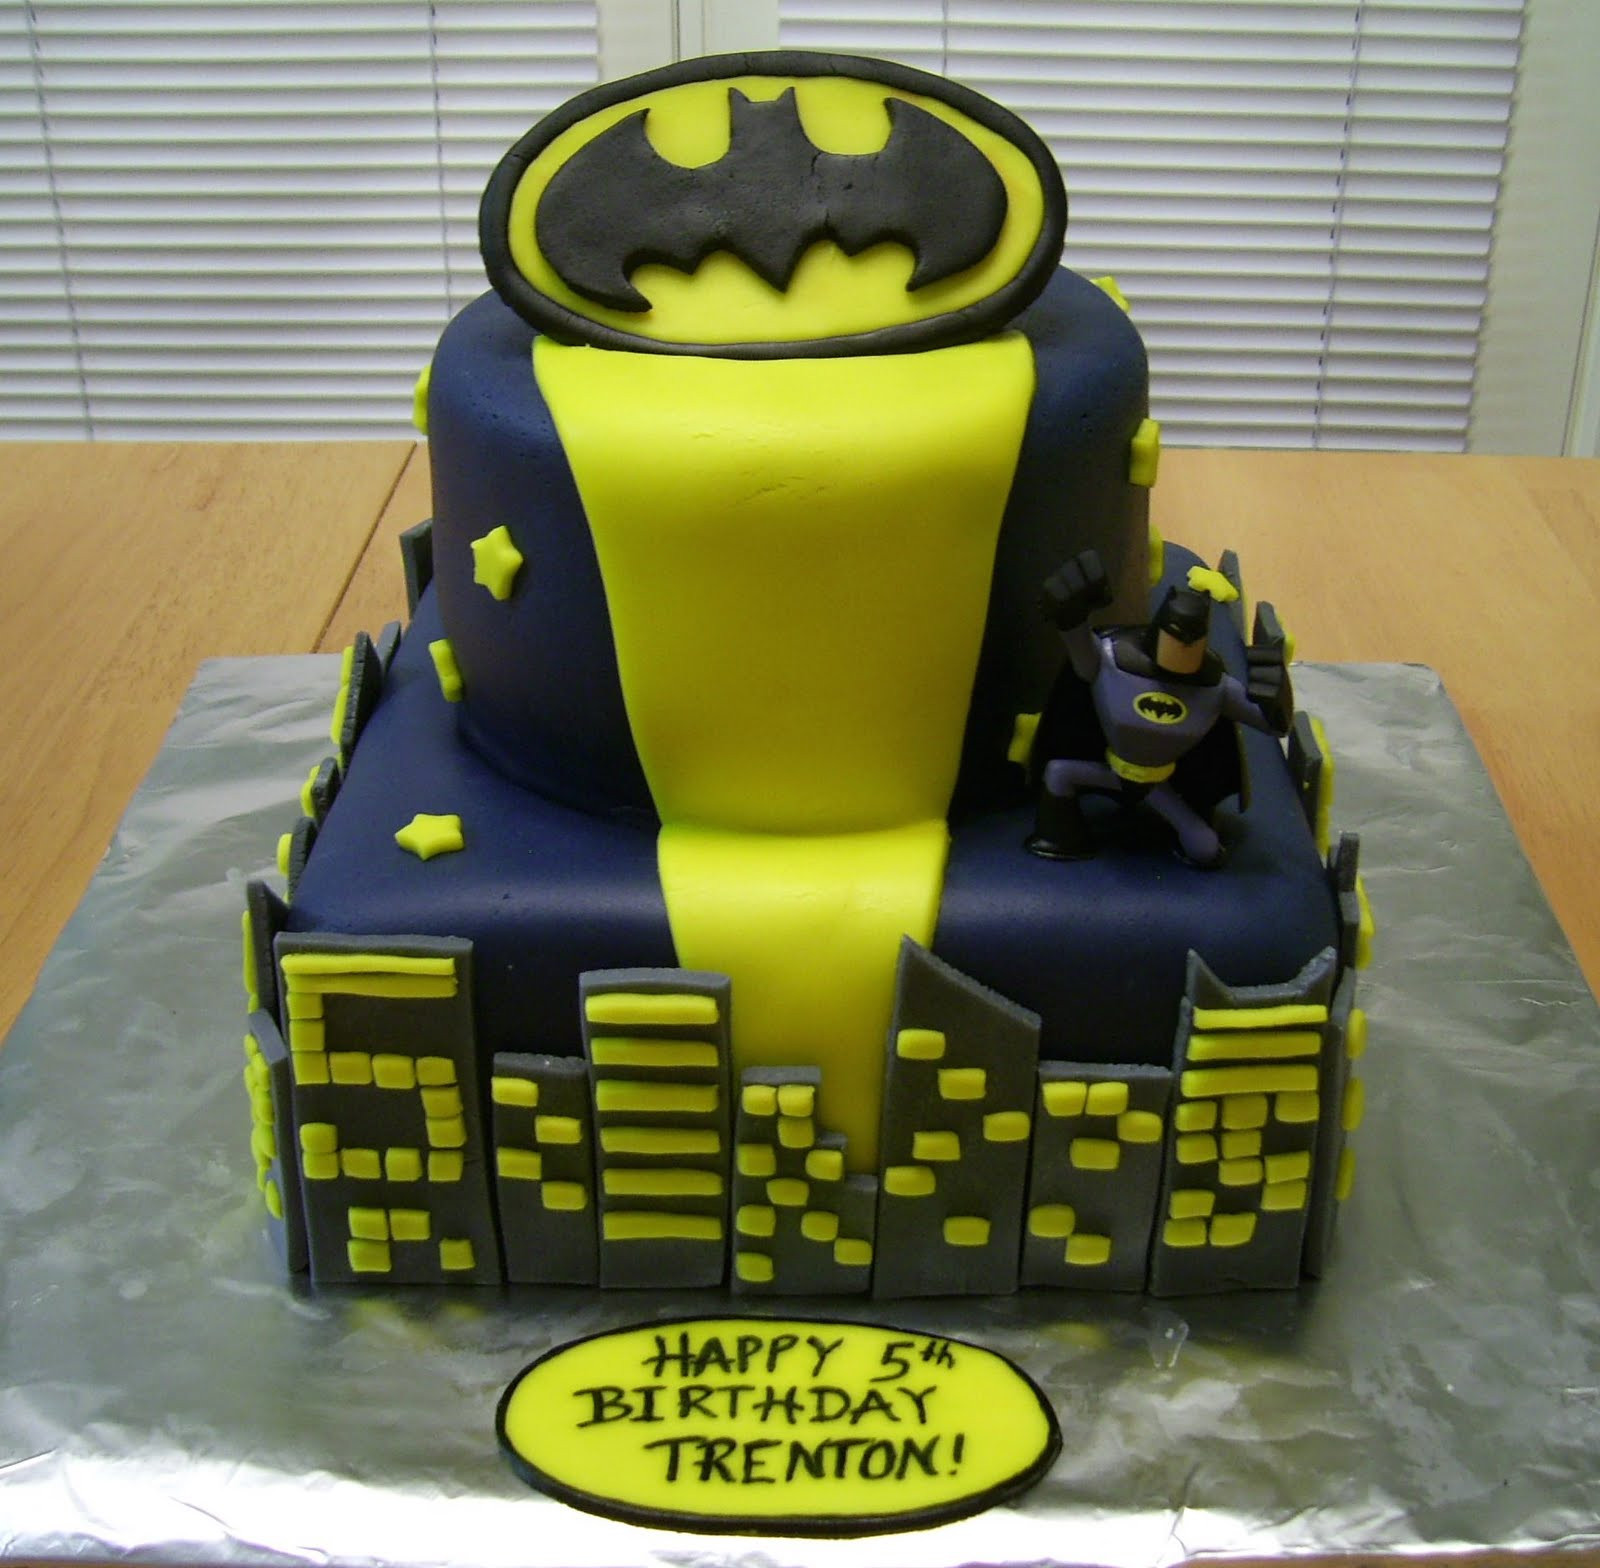 Best ideas about Batman Birthday Cake . Save or Pin Bellissimo Specialty Cakes Batman Birthday Cake 1 10 Now.